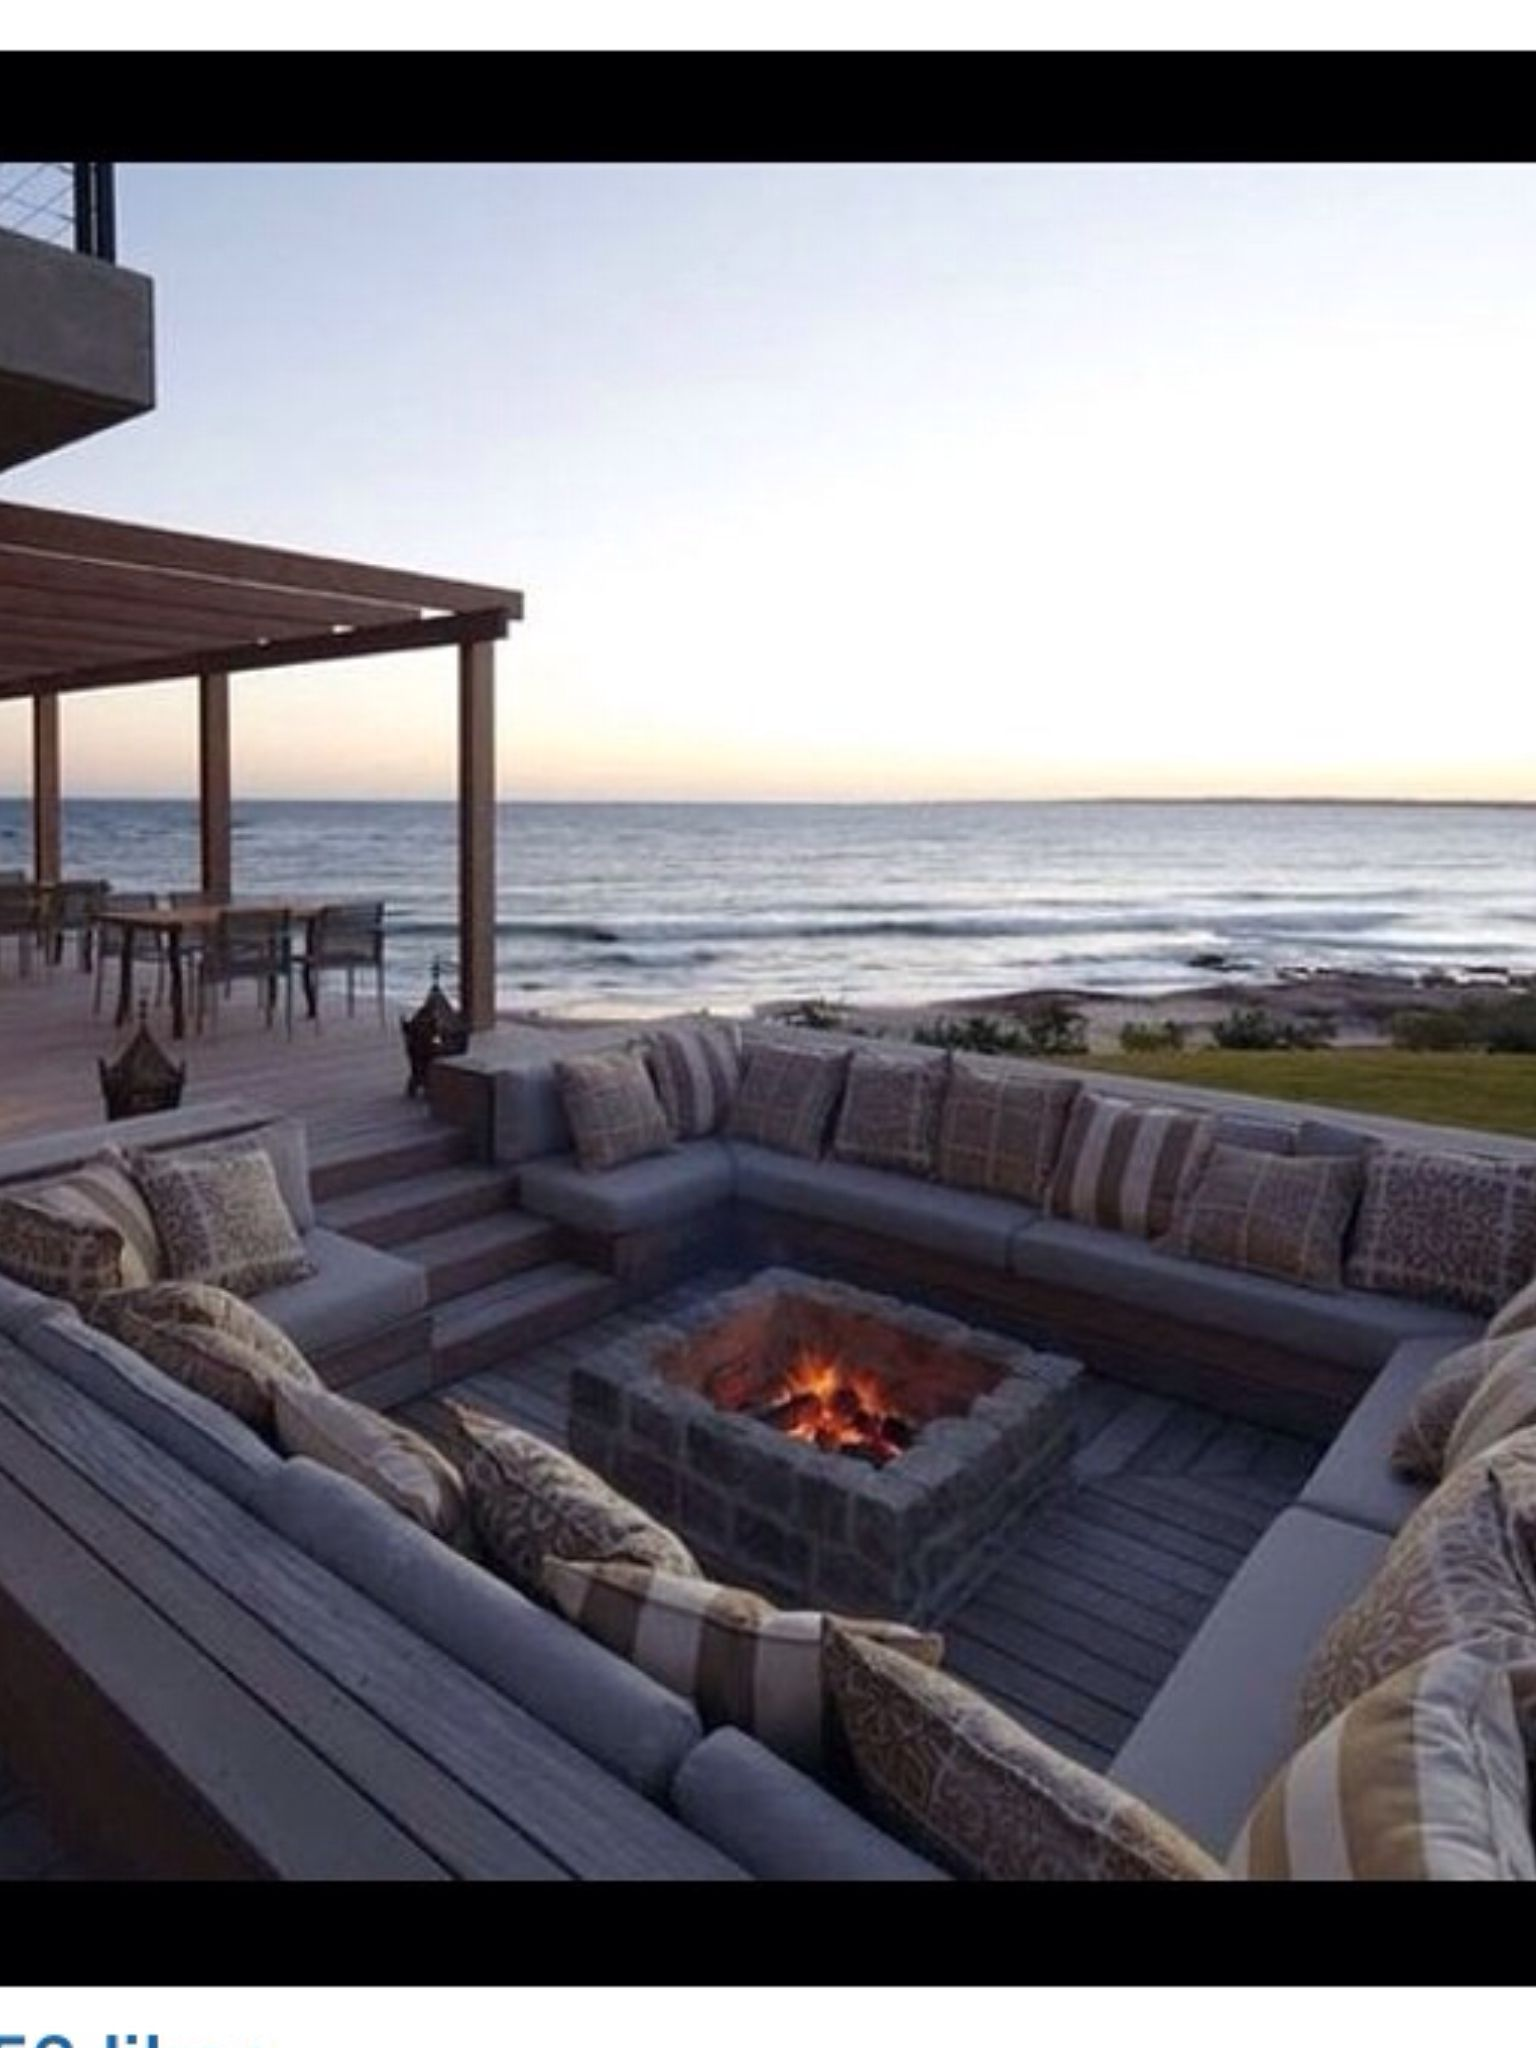 Sunken Fire Pit Seating Area   Love It!